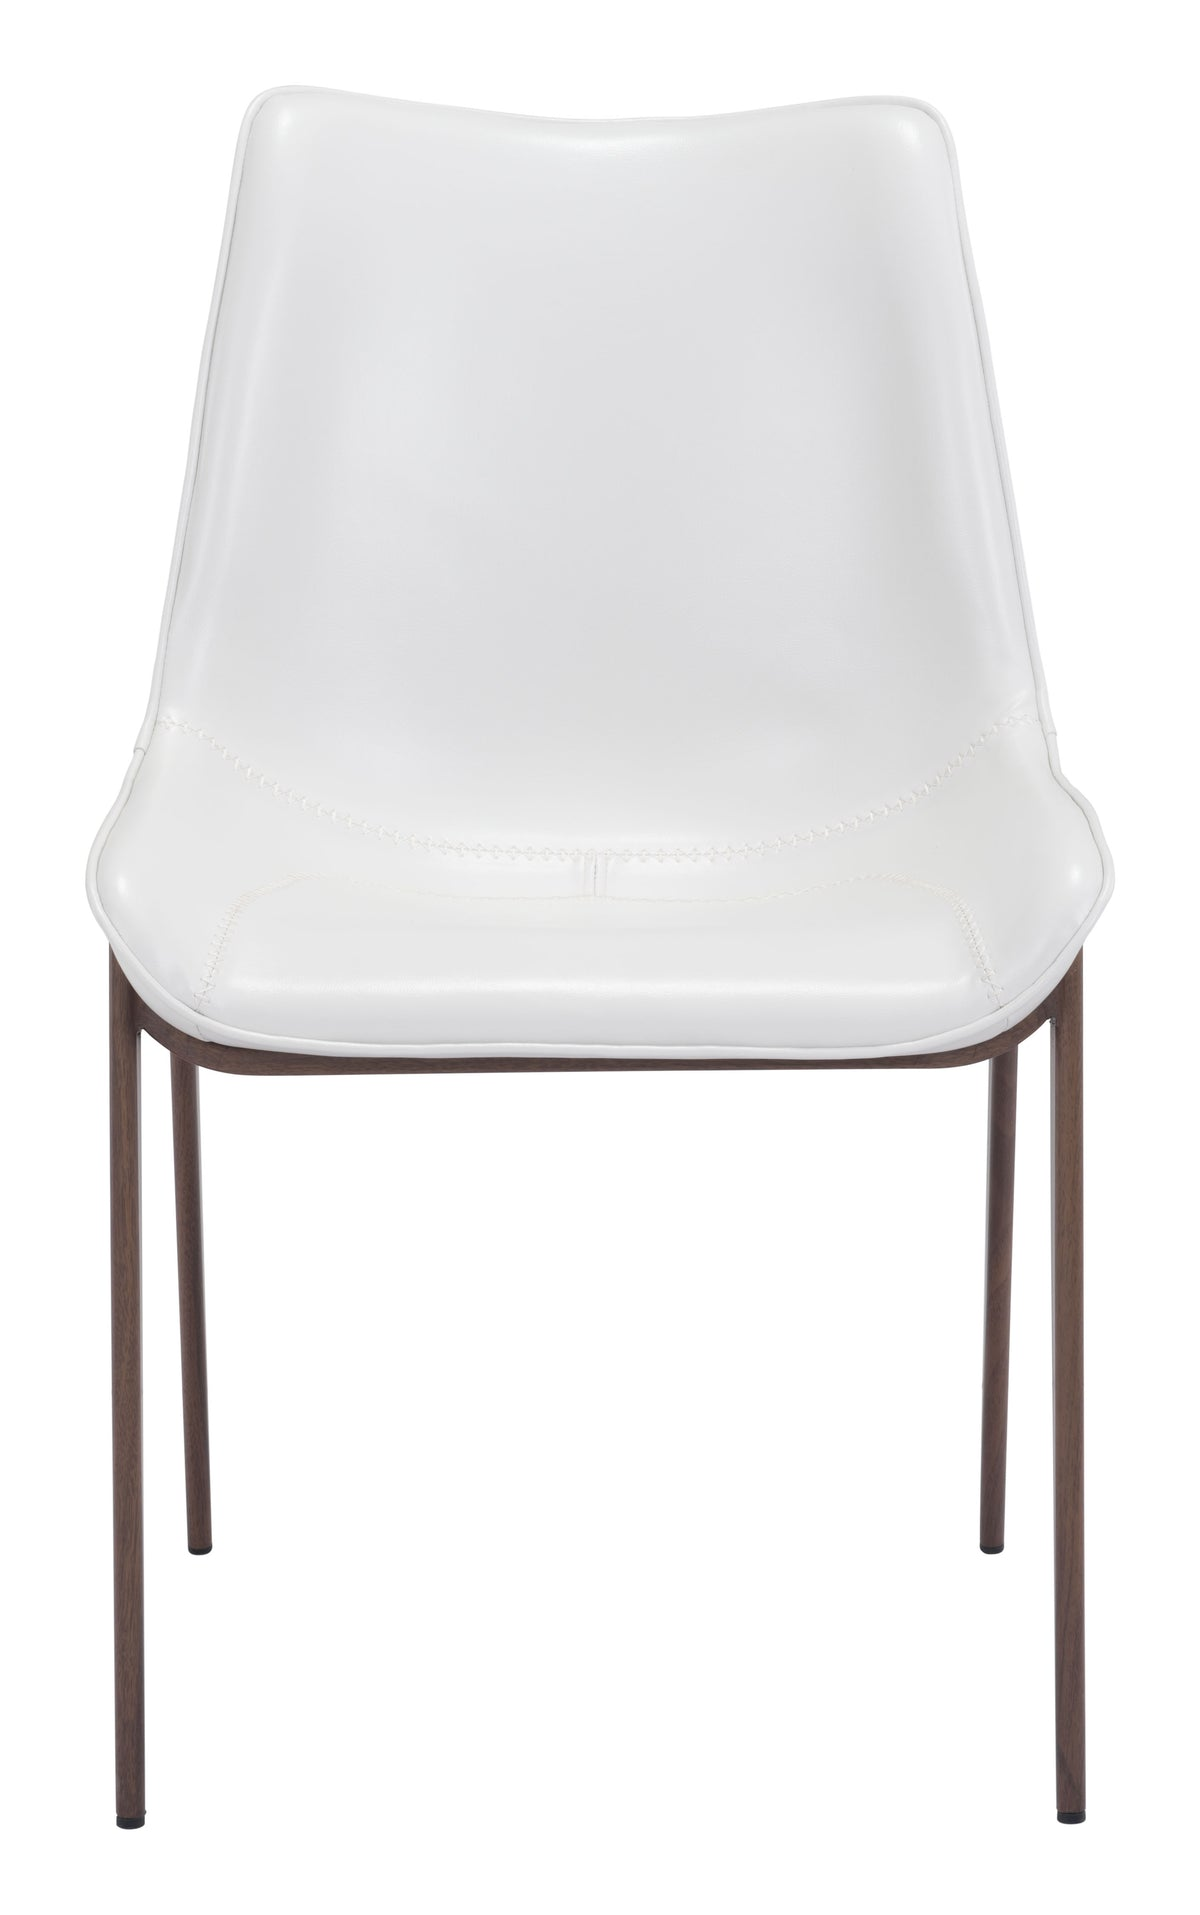 Bori Dining Chair White & Walnut - Set of 2